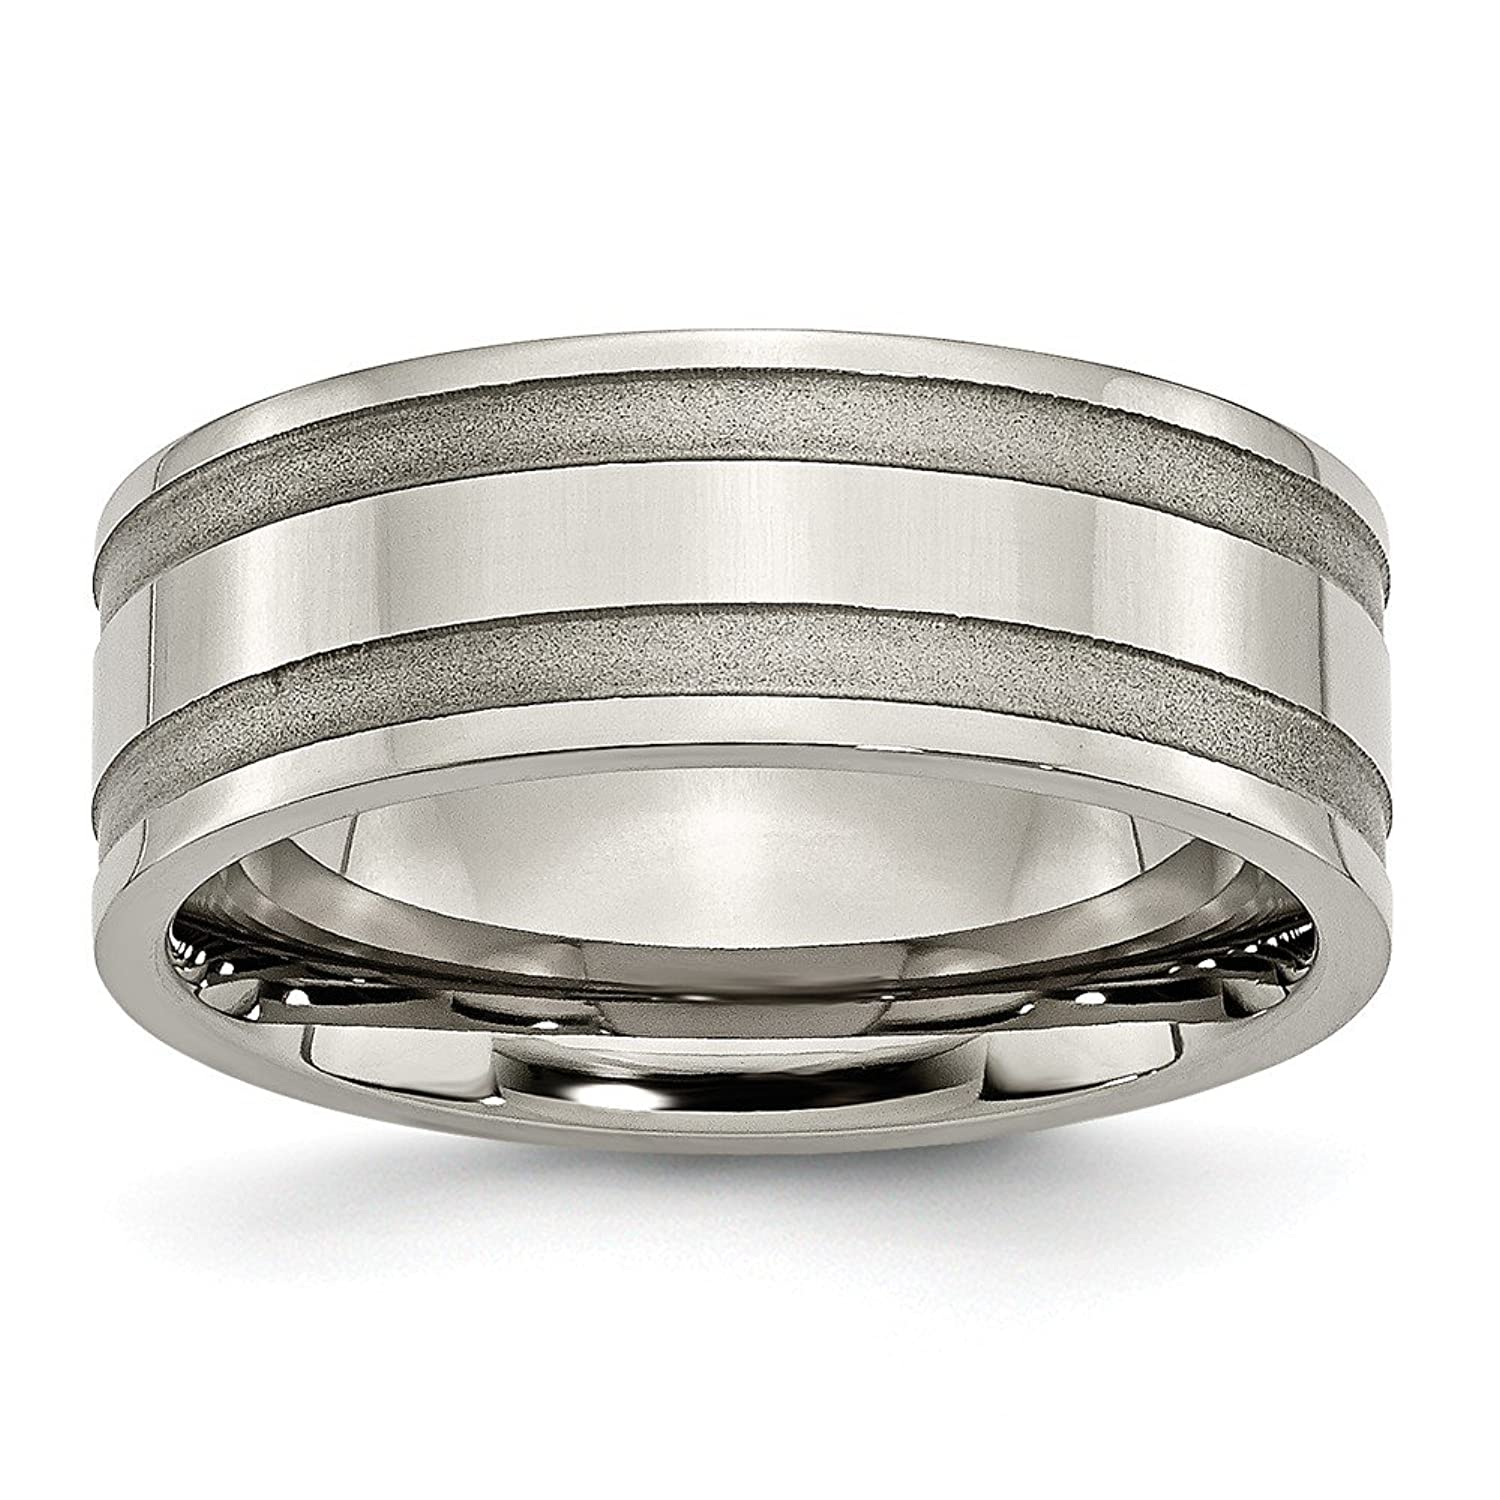 Titanium Grooved 8mm Brushed and Polished Band Size 8